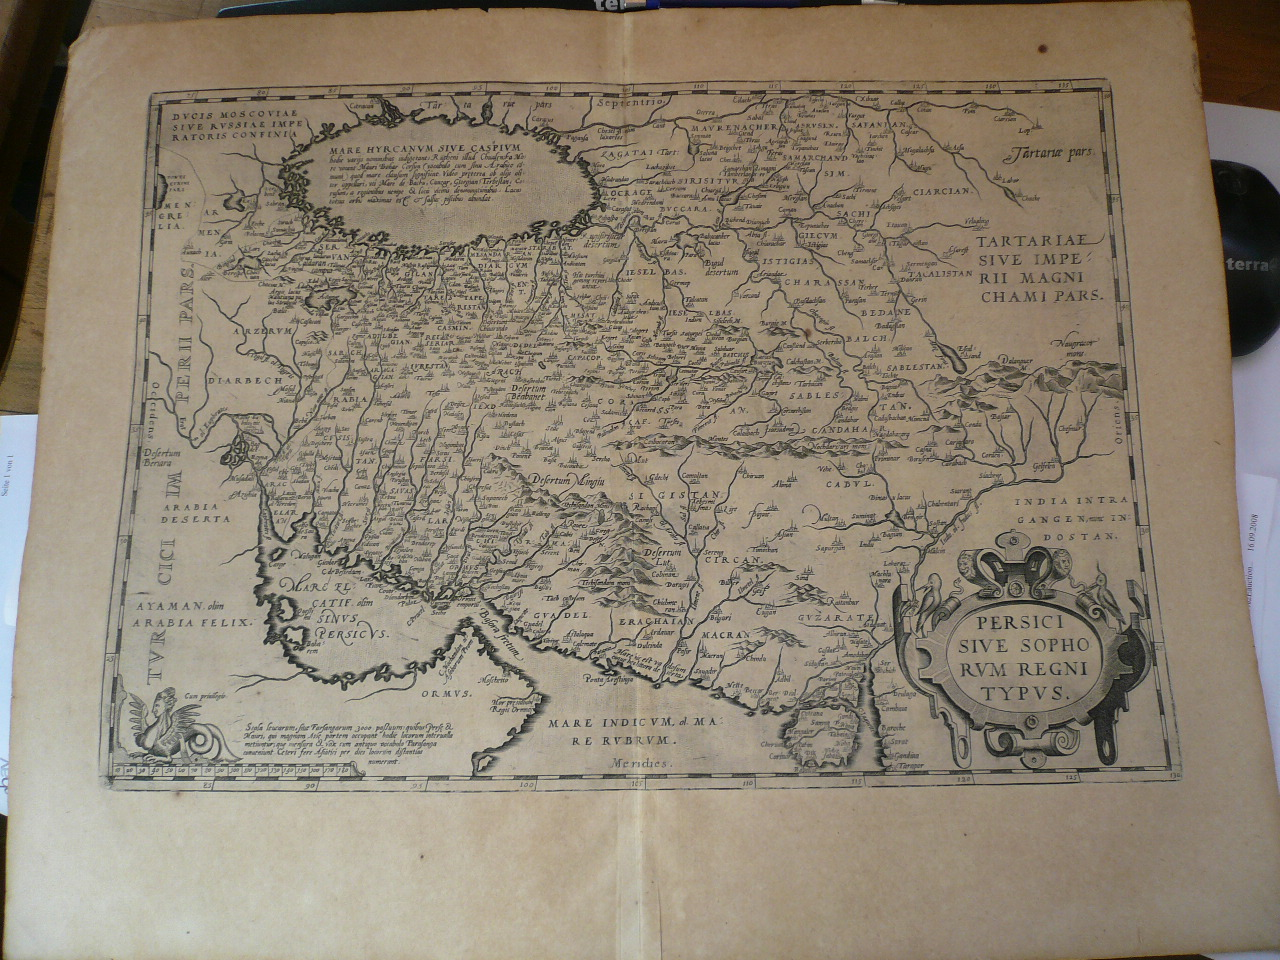 Persici sive sophorum, map, Ortelius, anno 1602, spanish edition